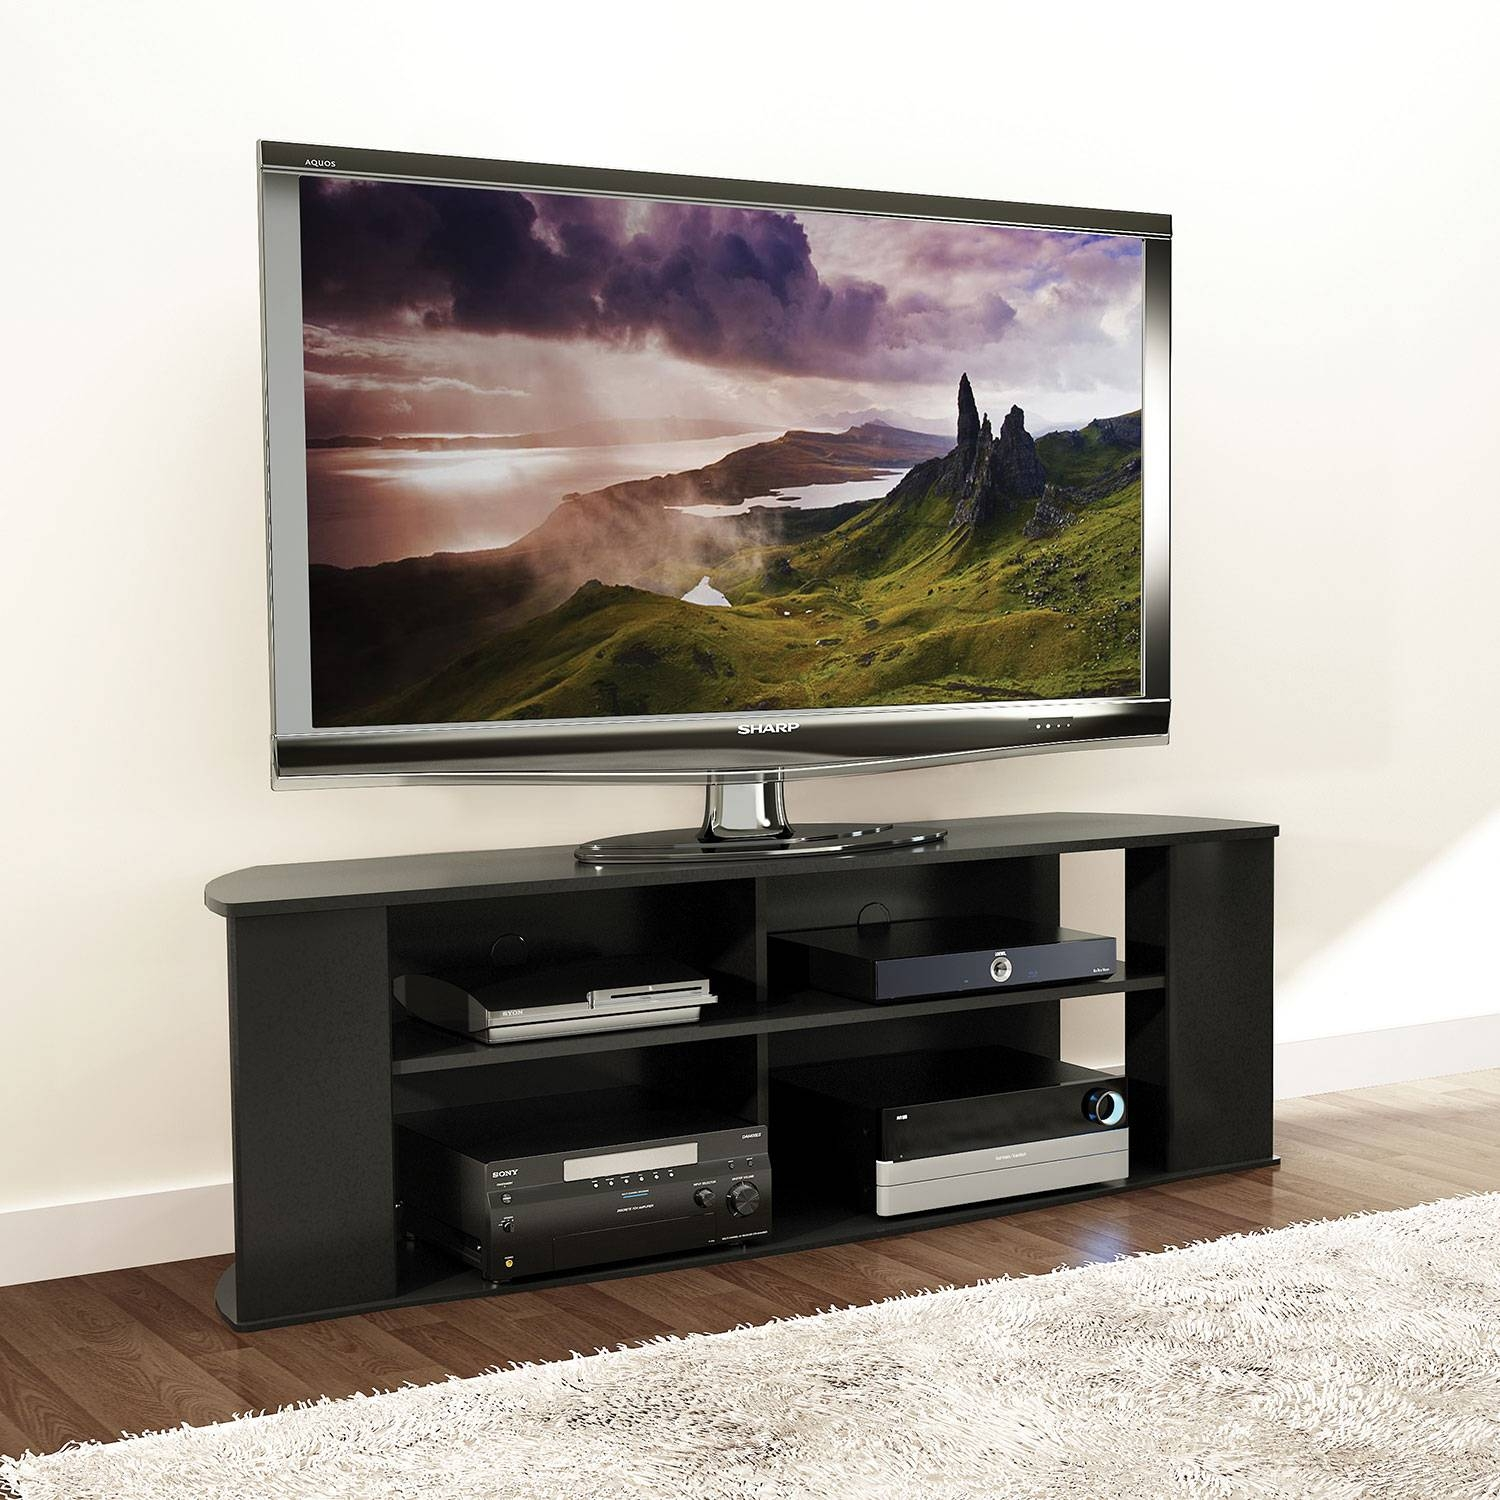 "Prefac Essentials 60"" Tv Stand - Black : Tv Stands - Best Buy Canada inside Retro Corner Tv Stands (Image 5 of 15)"